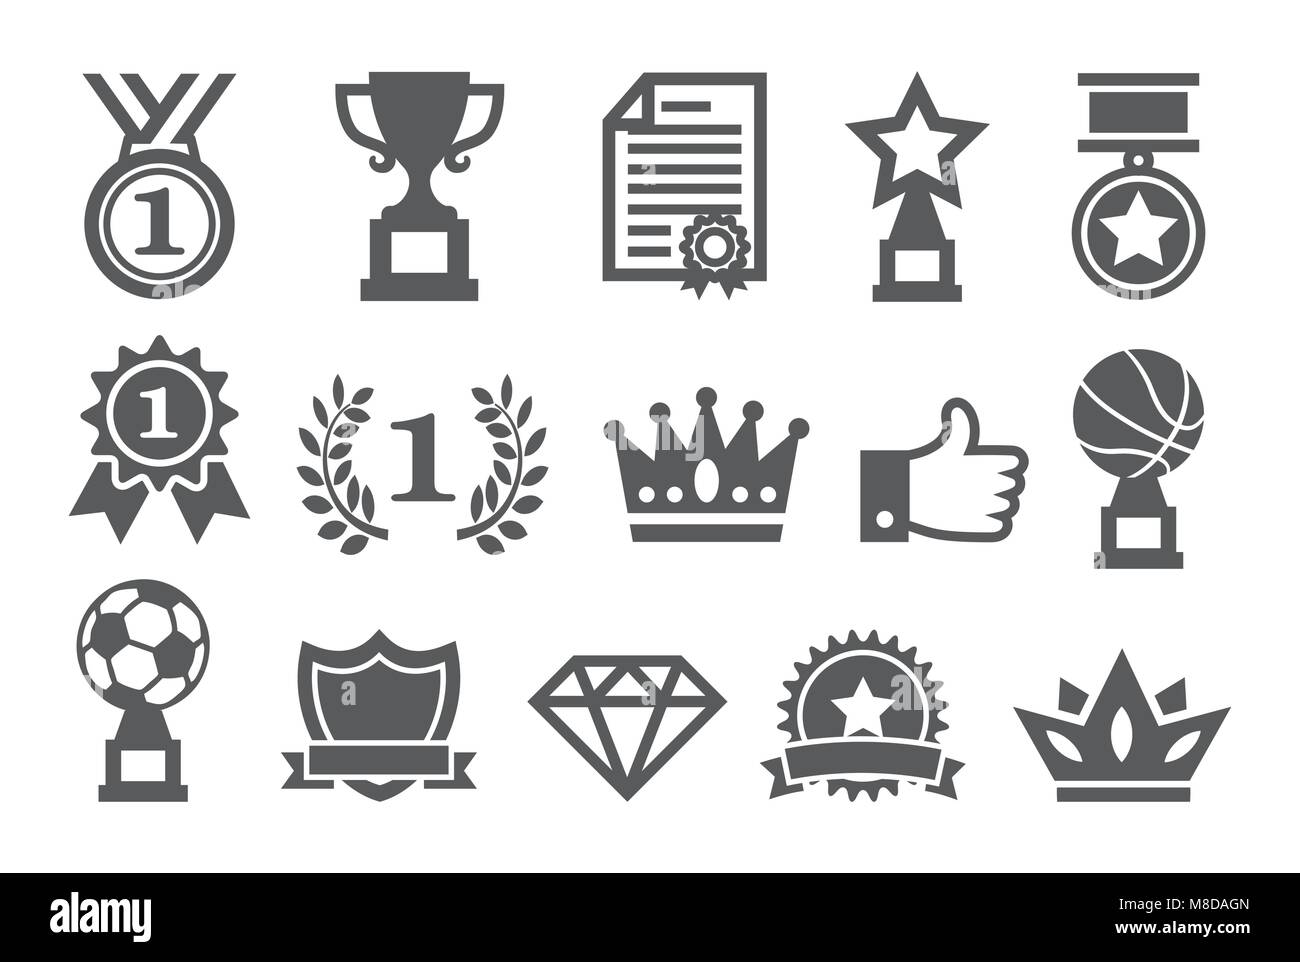 Awards icons set - Stock Image